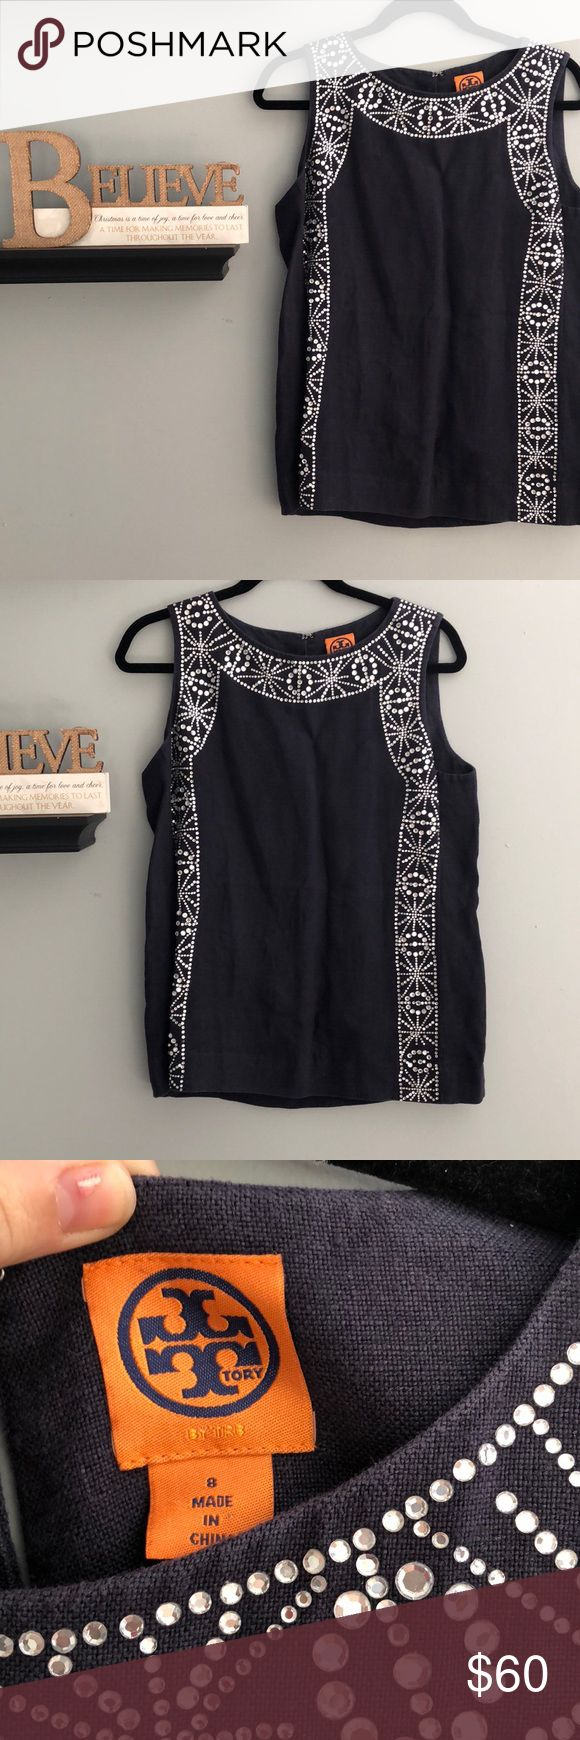 Tory Burch Linen Jeweled Blouse Beautiful Blouse with jewels through out the top.  90% of the jewels are in-tacked  100% Linen Tory Burch Tops